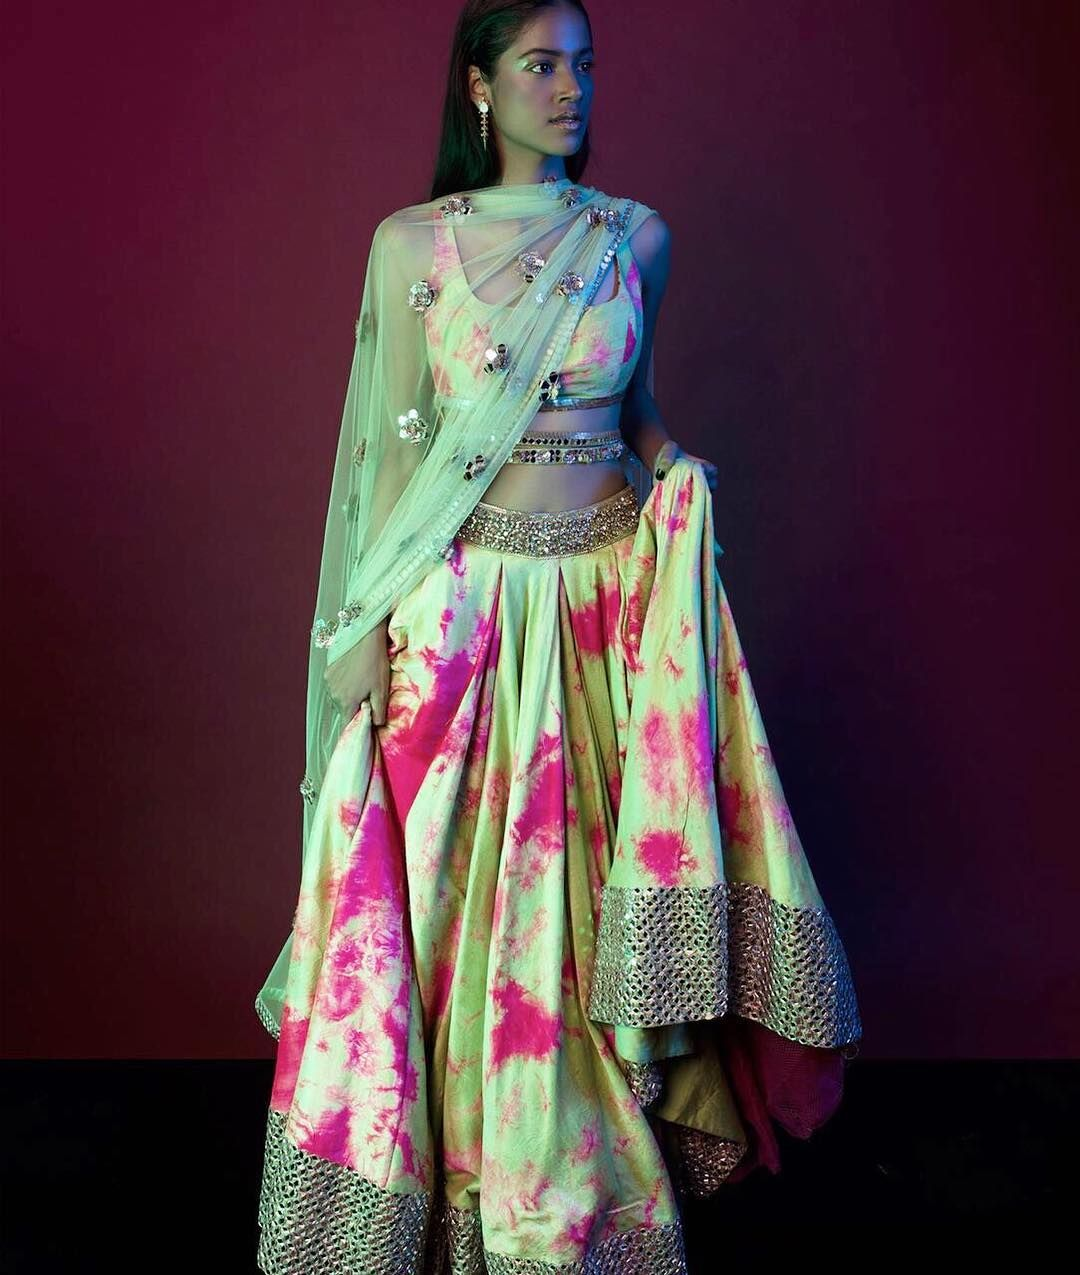 13a8aa78f95 15 Irresistible Indian Wedding Dress Ideas for Bride s Sister ...